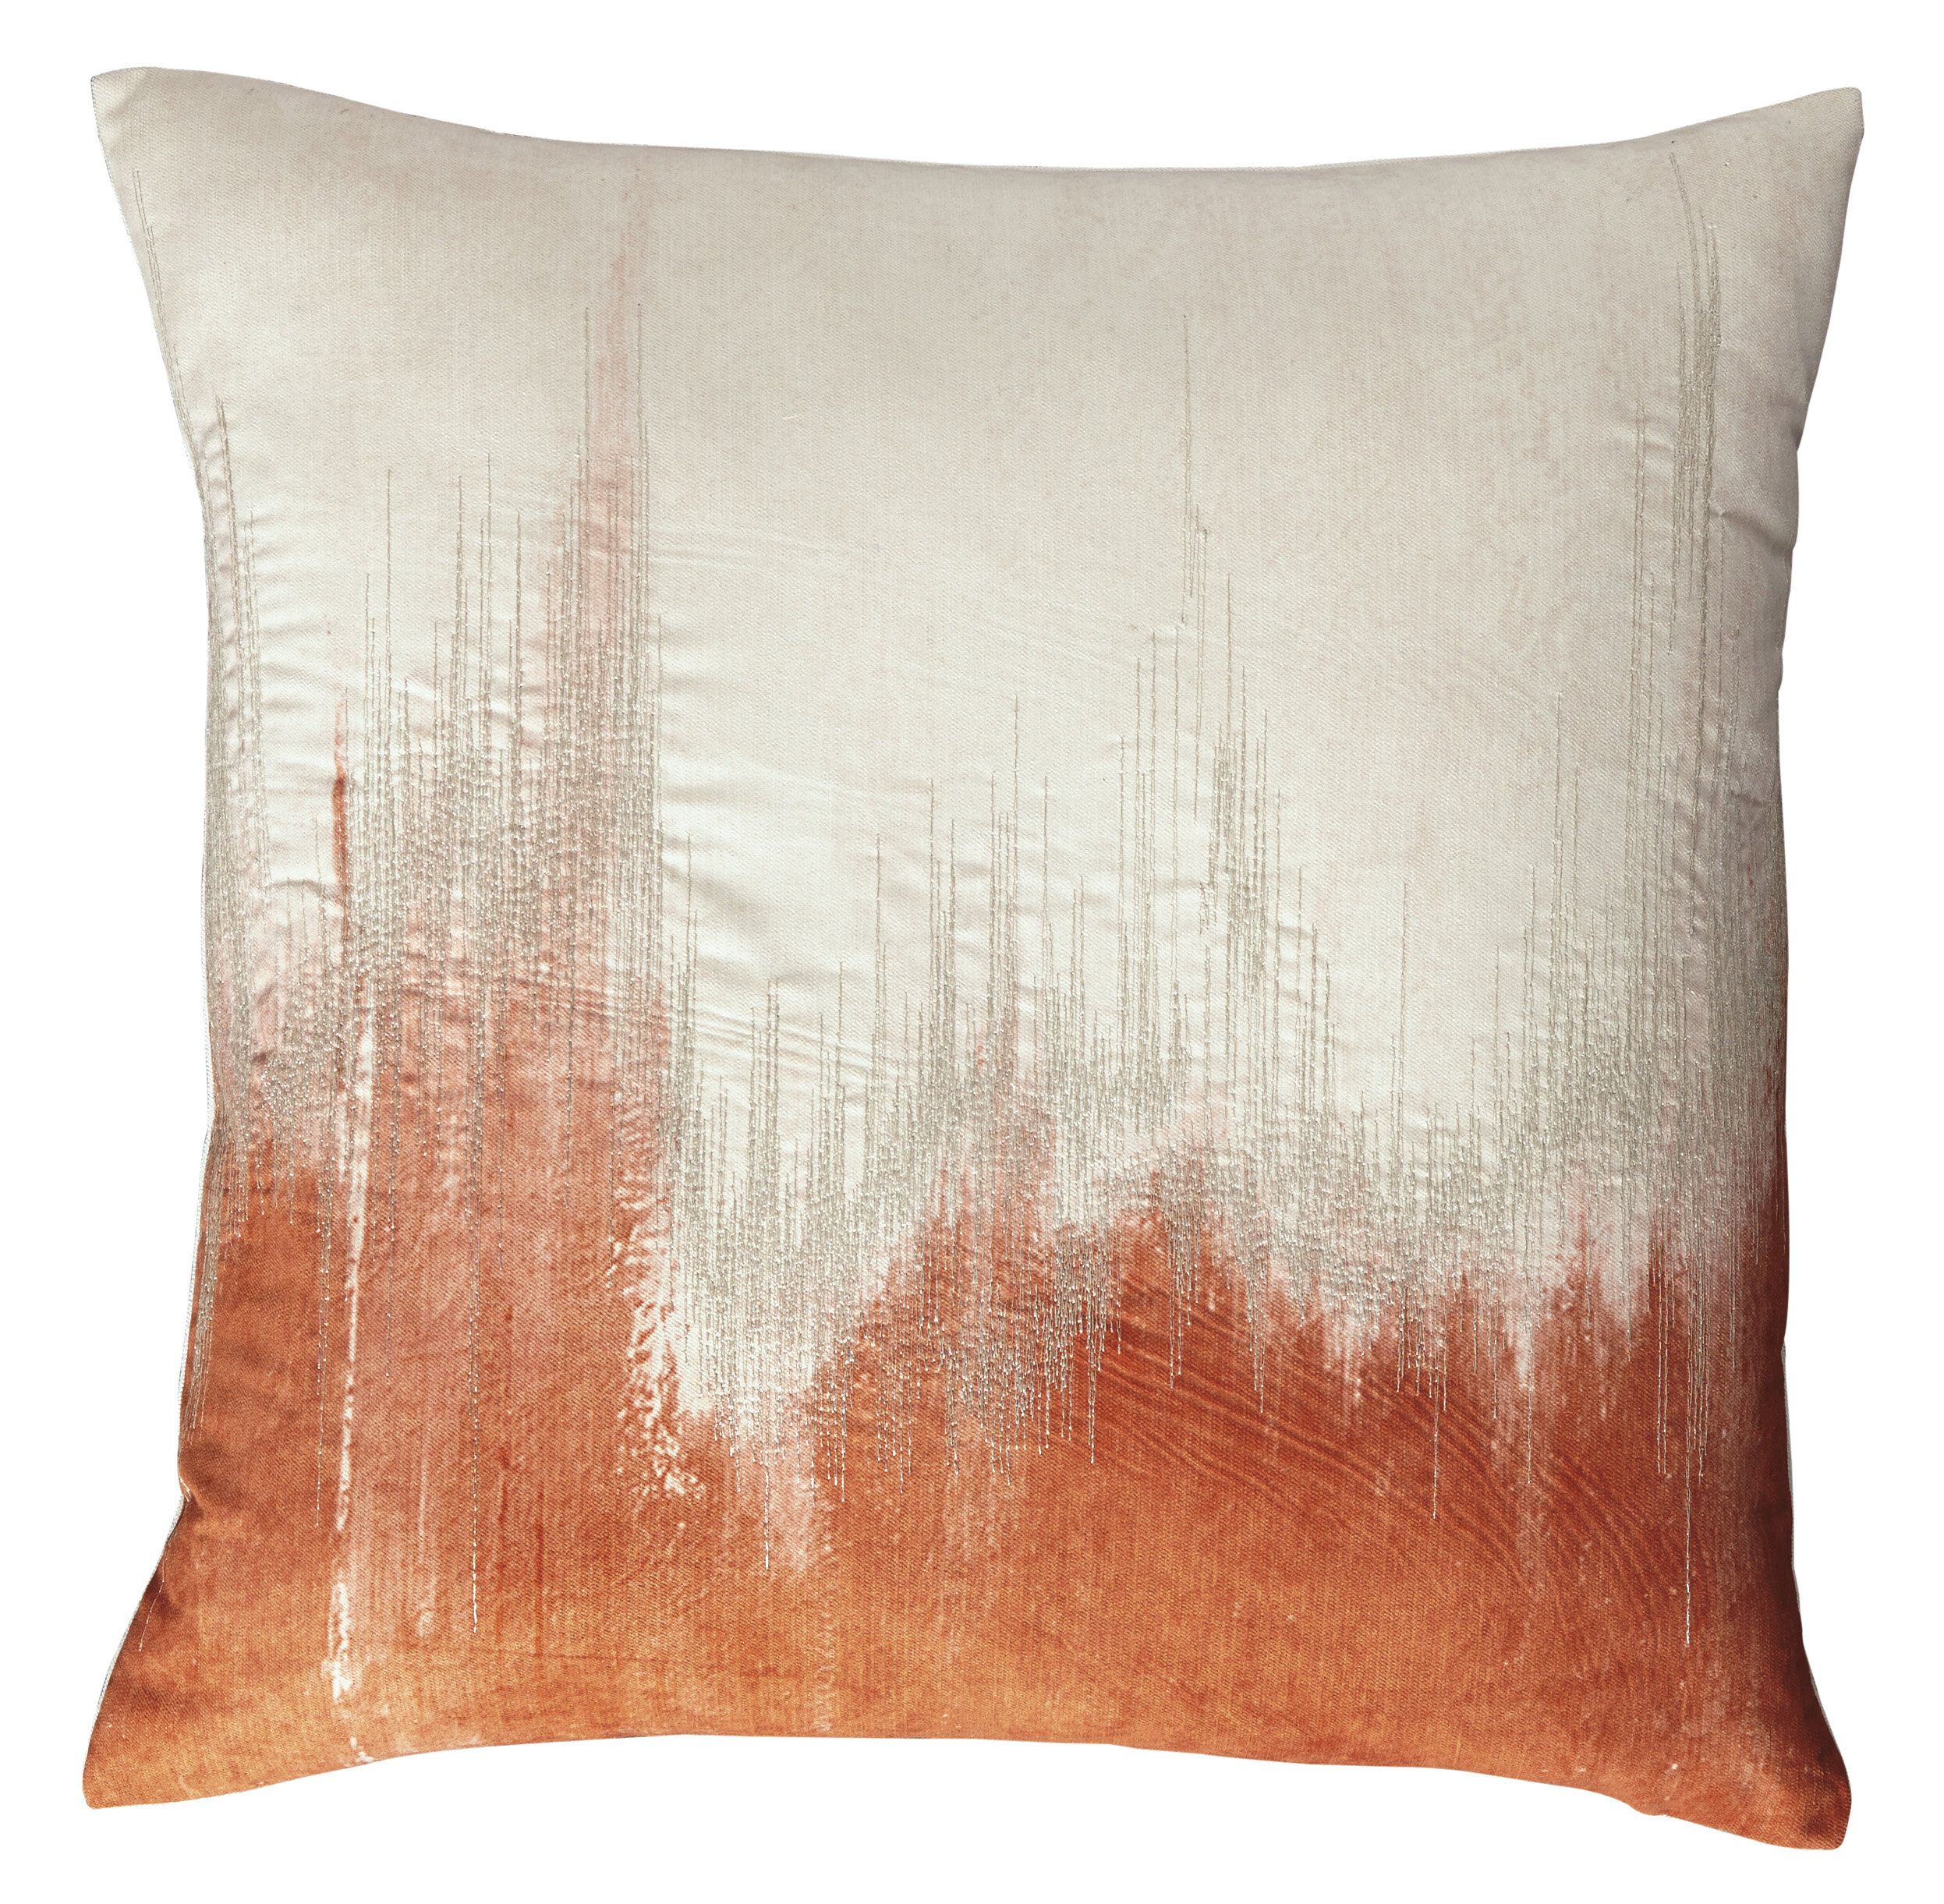 pillows tur west at target decor covers ideas lumbar gold astonishing green accessories elm plaid bronze mint home for pillow decorative bed orange throw